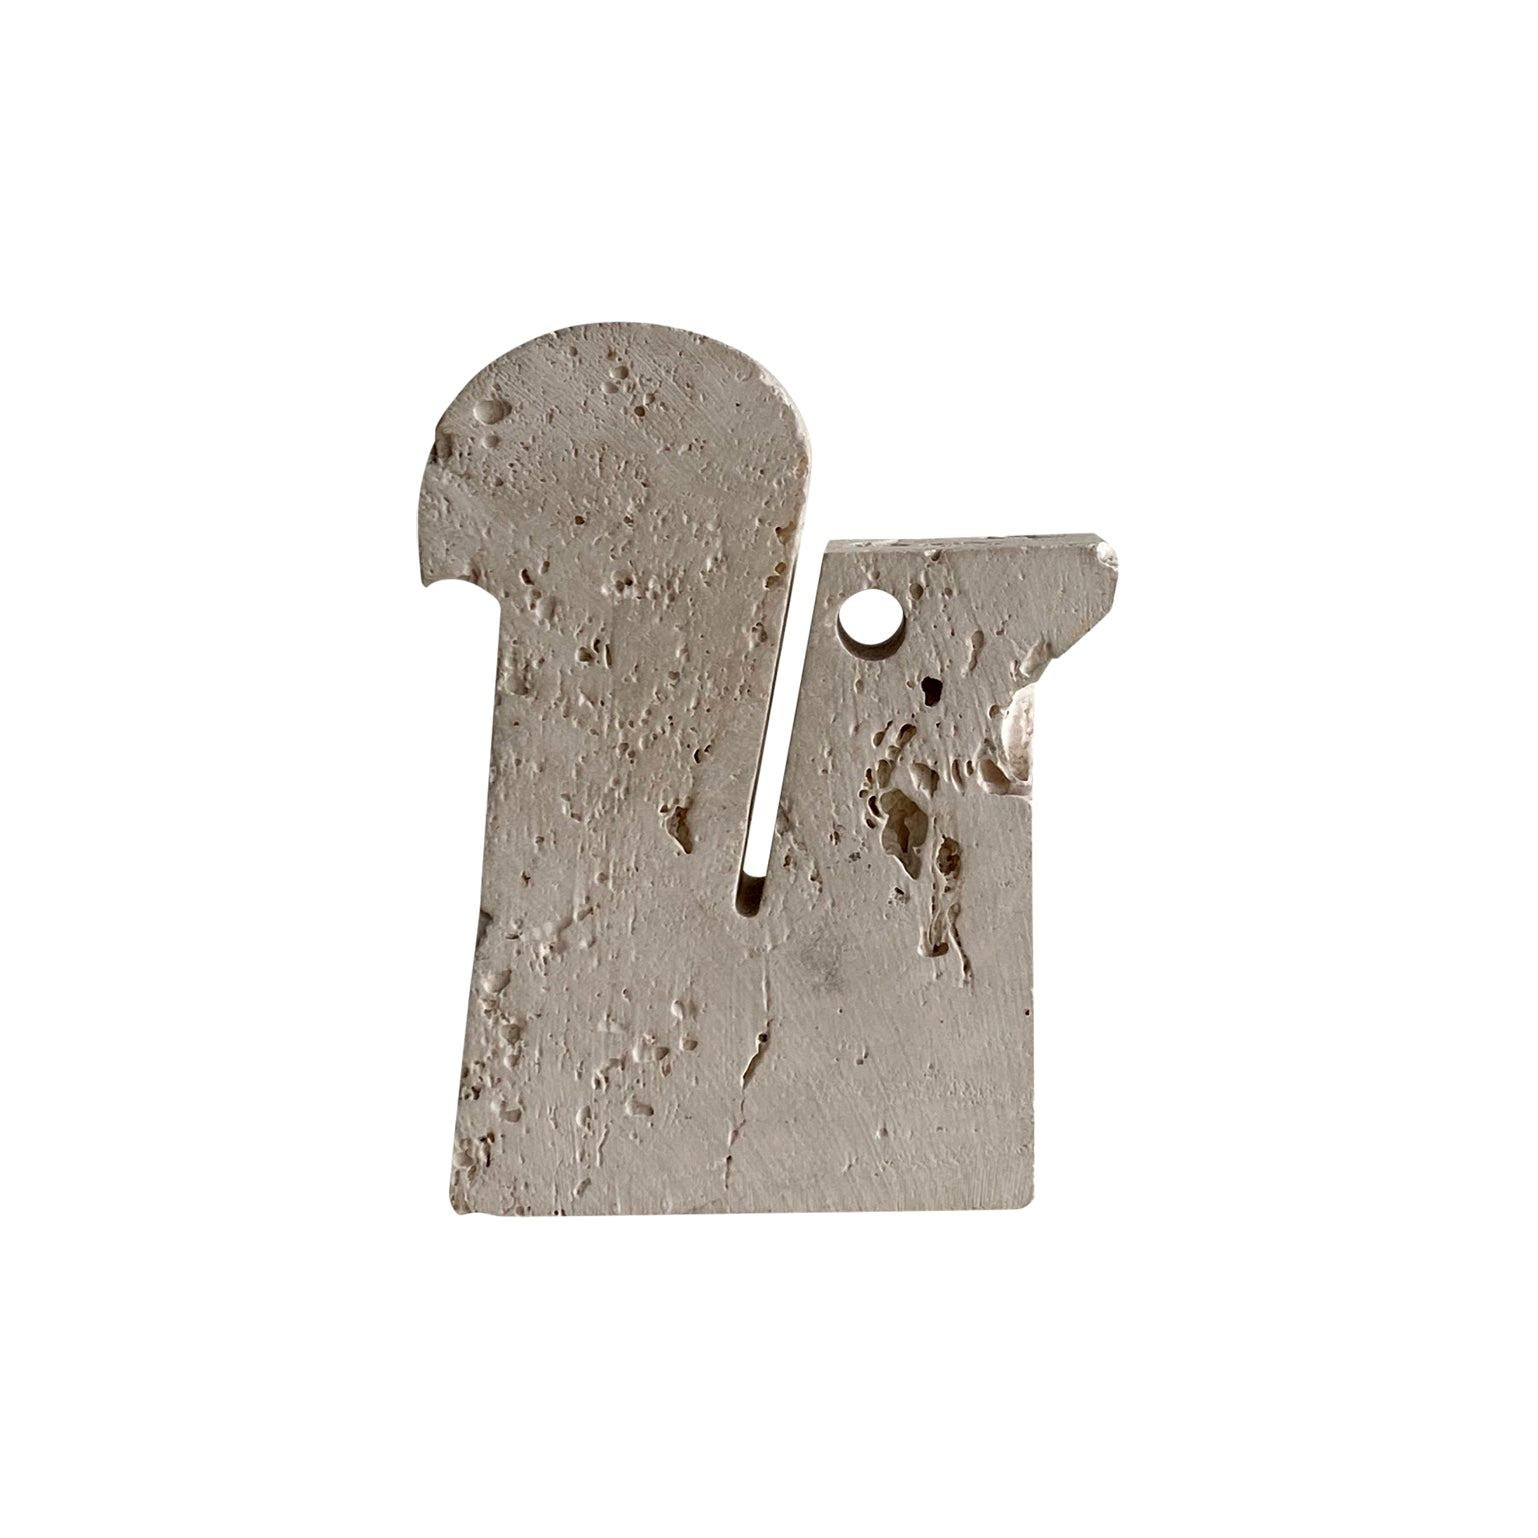 Travertine Squirrel Sculpture, Card, Letter Holder by Fratelli Mannelli, 1970s